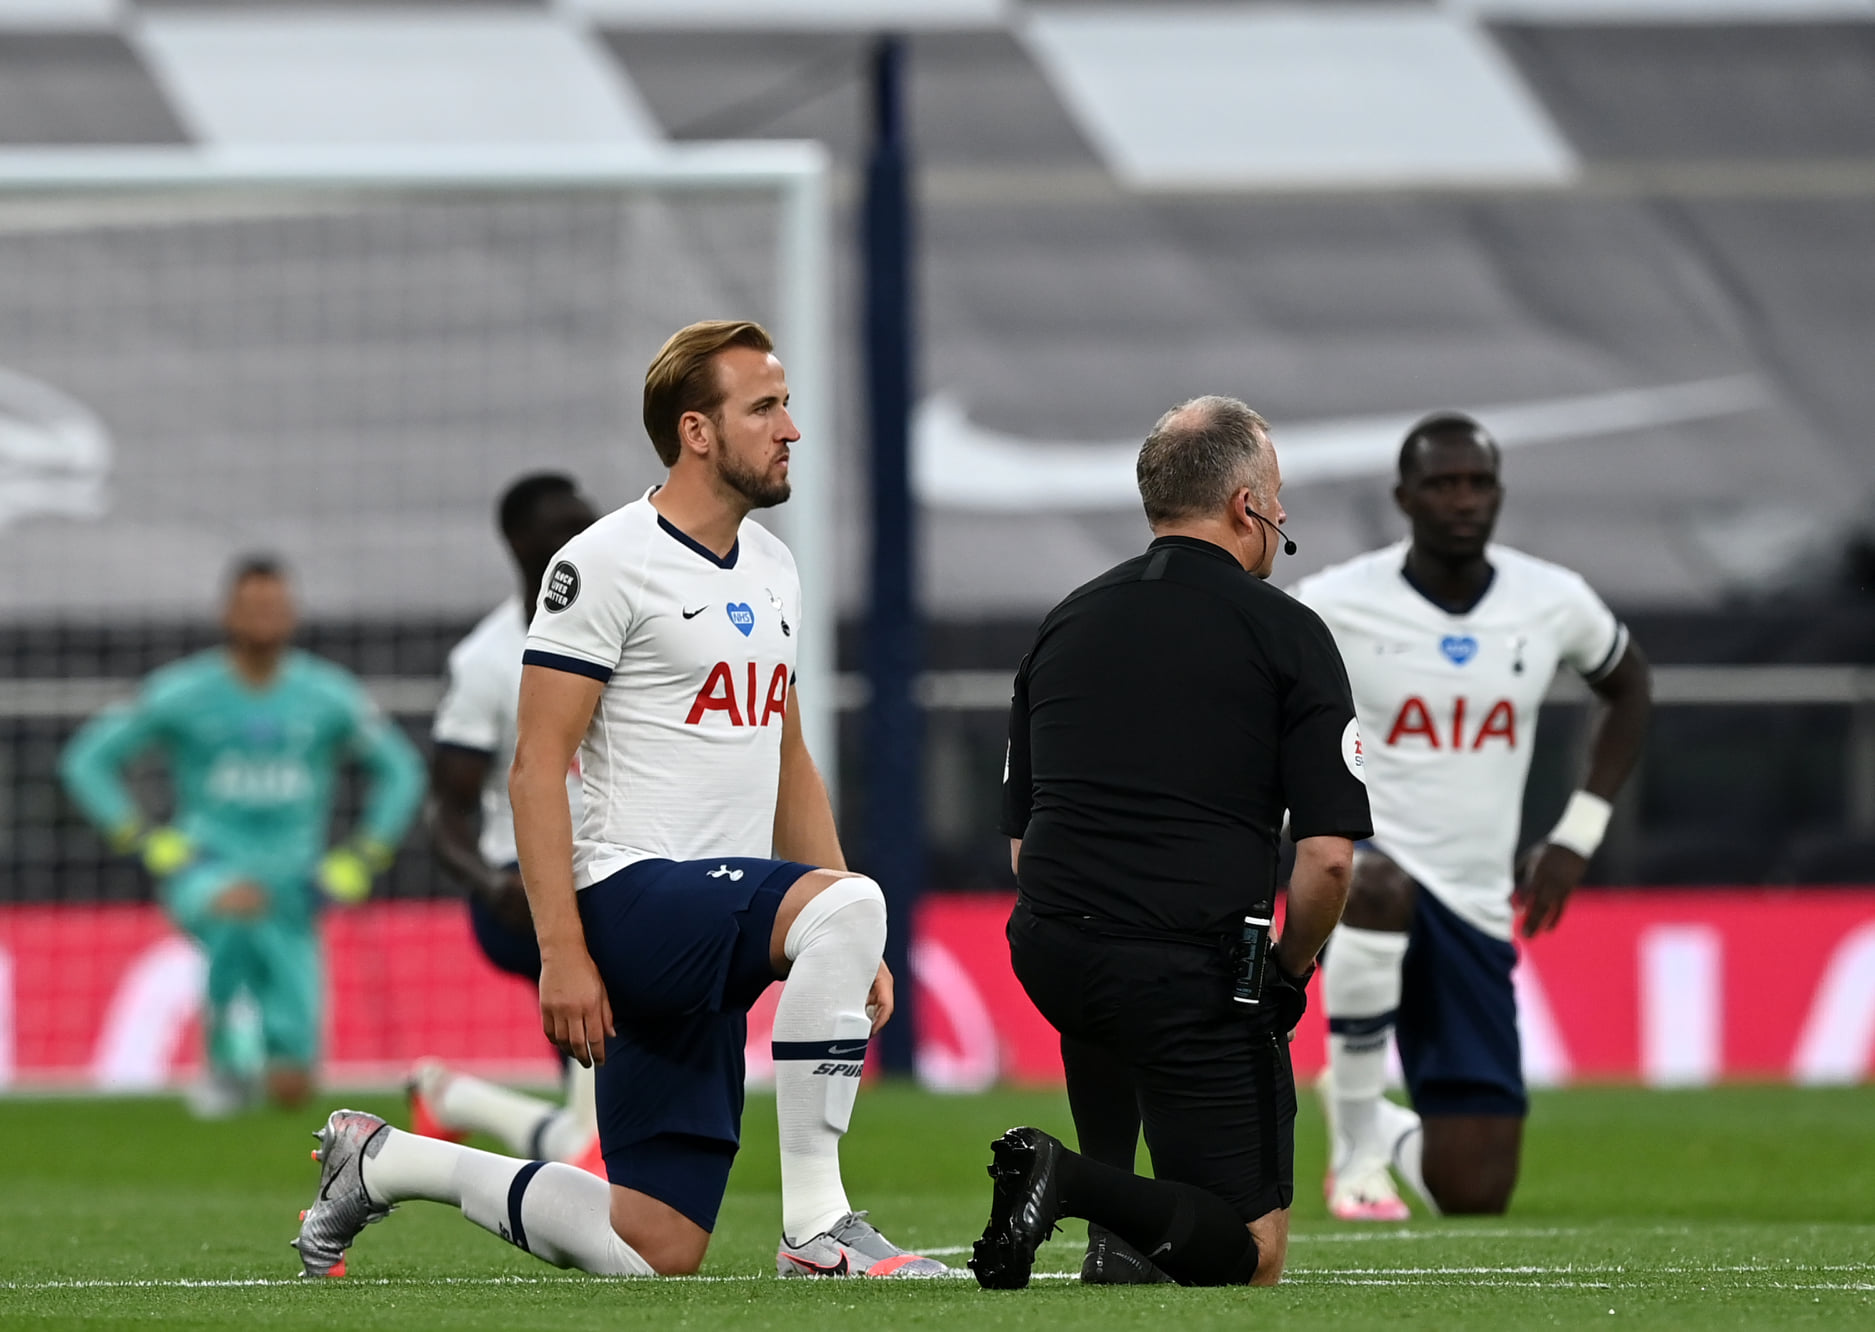 Players continue tot ake the knee prior to kickoff